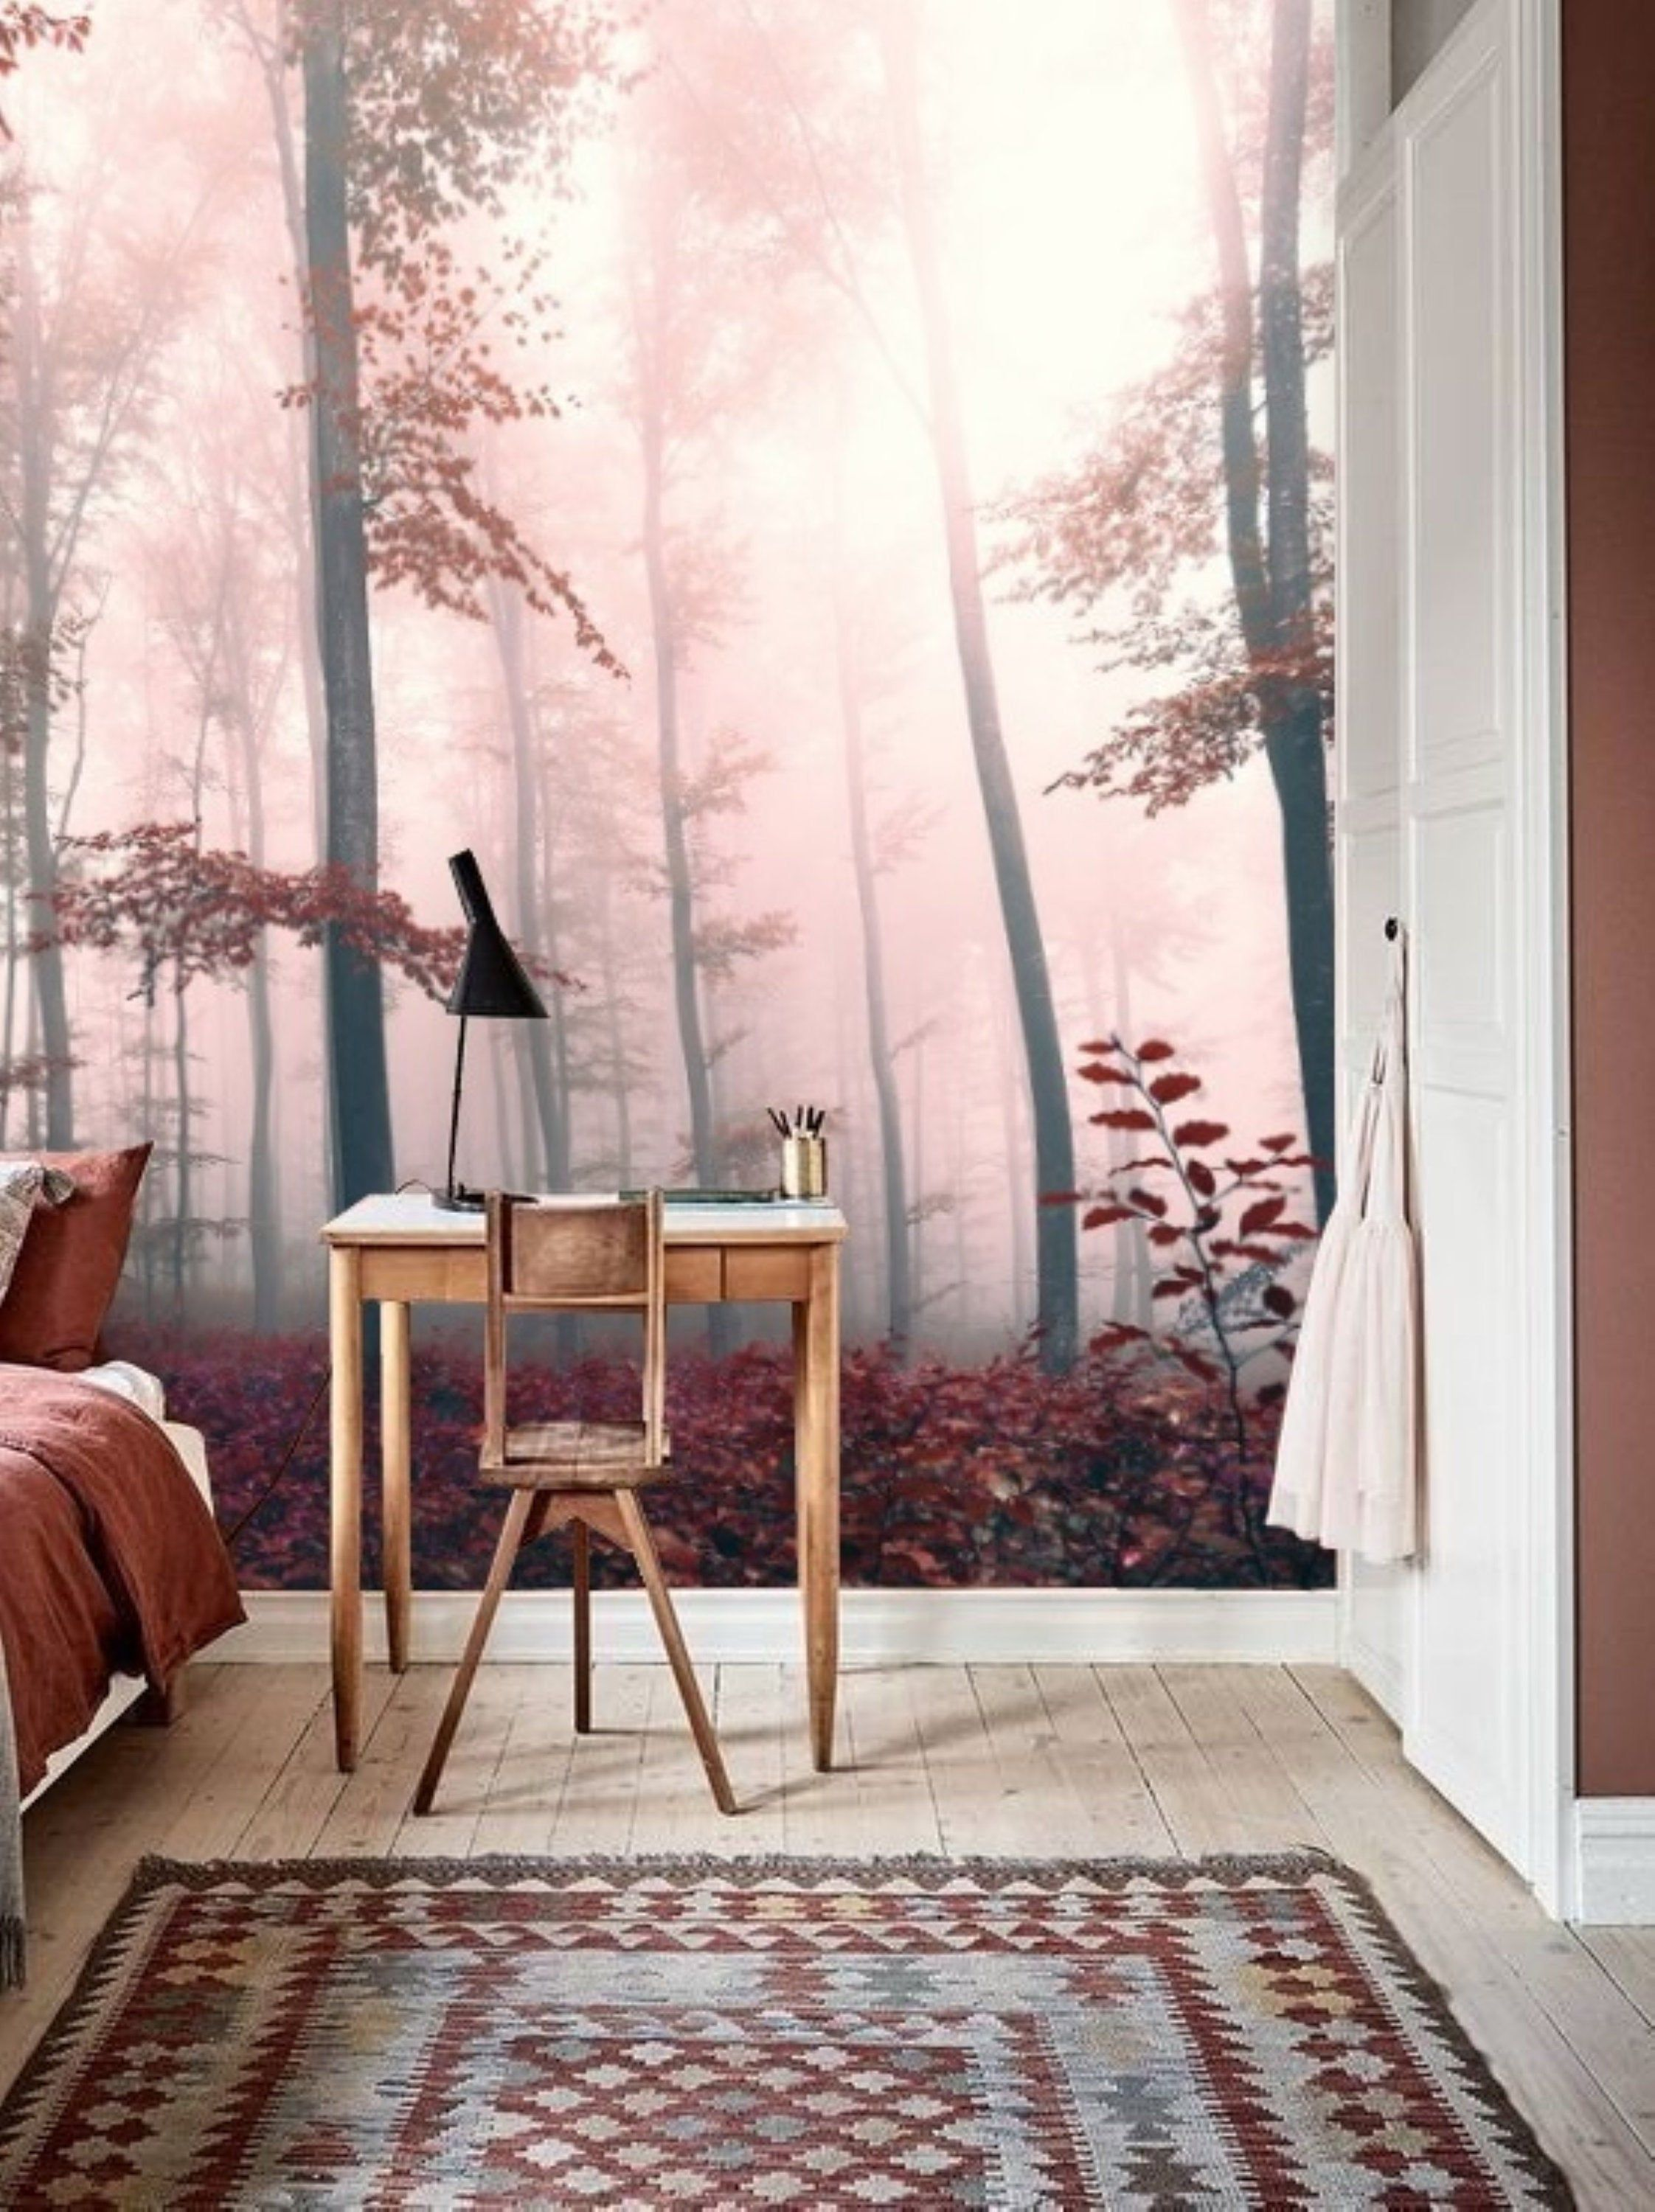 Forest Wall Mural Removable Wallpaper Peel Stick Mural Landscape Wallpaper Forest Reusable Wallpaper Temporary Large Forest Print 177 Forest Wall Mural Wall Murals Mural